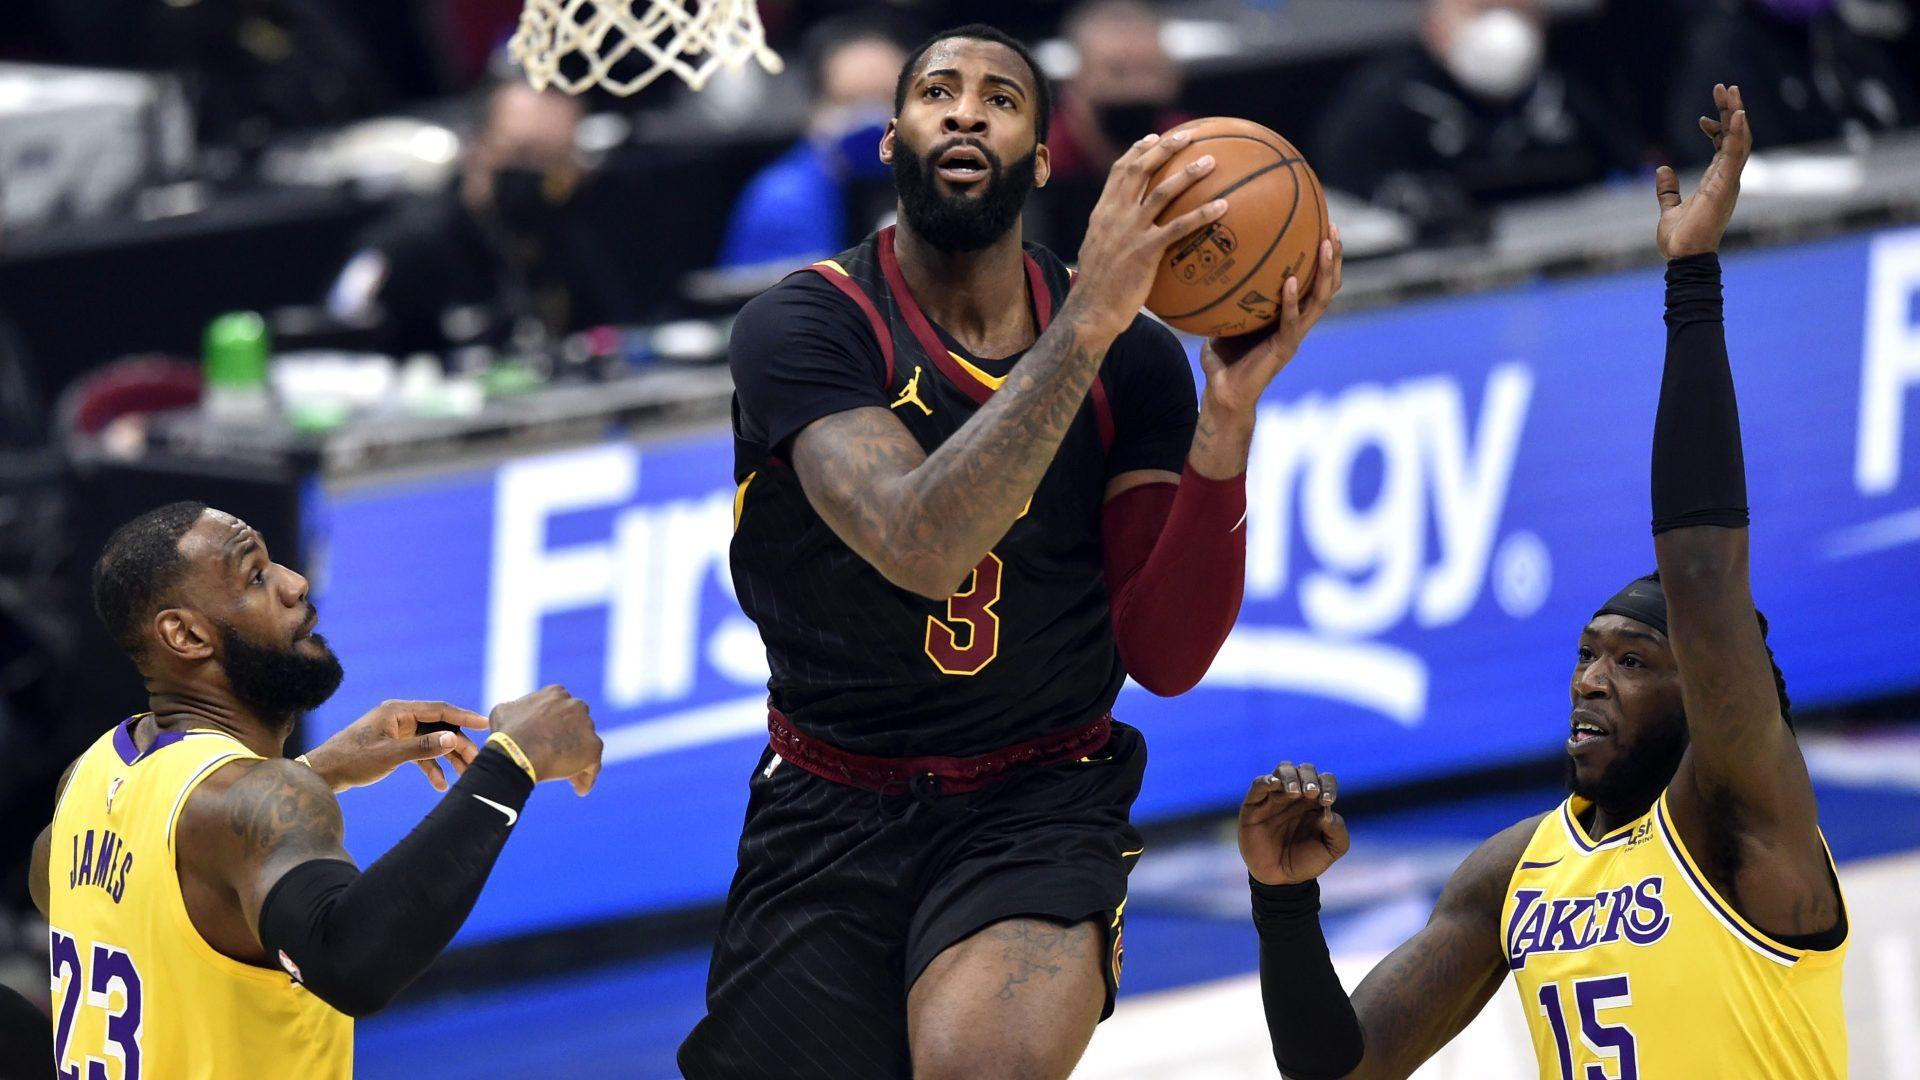 Rumor: Andre Drummond could join Lakers if he gets Cavaliers buyout - Yahoo Sports